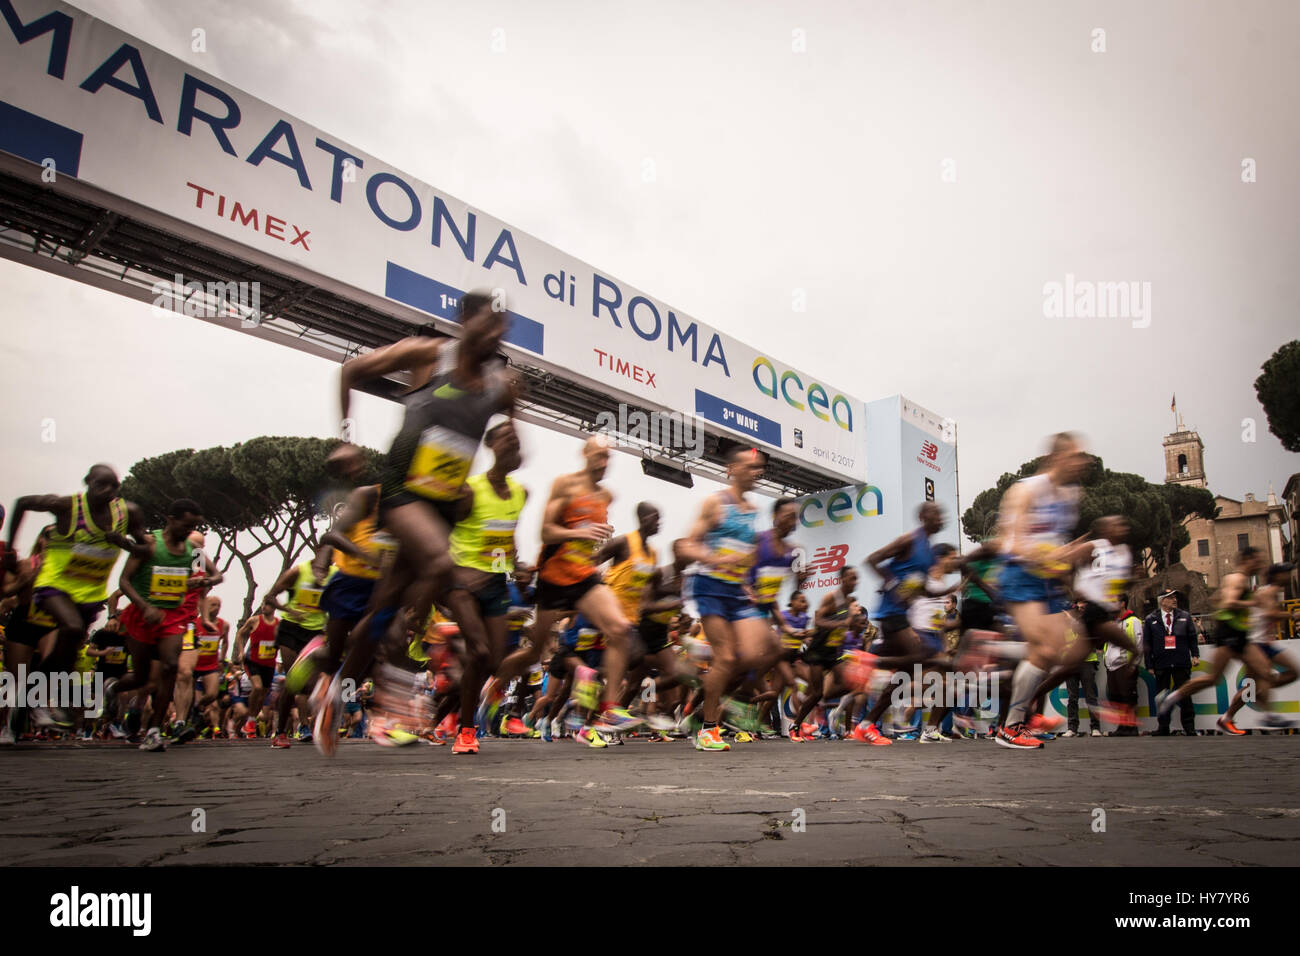 Rome, Italy. April 02 2017. Runners complete during the 23 edition of the Maratona di Roma (Rome Marathon ),an annual - Stock Image